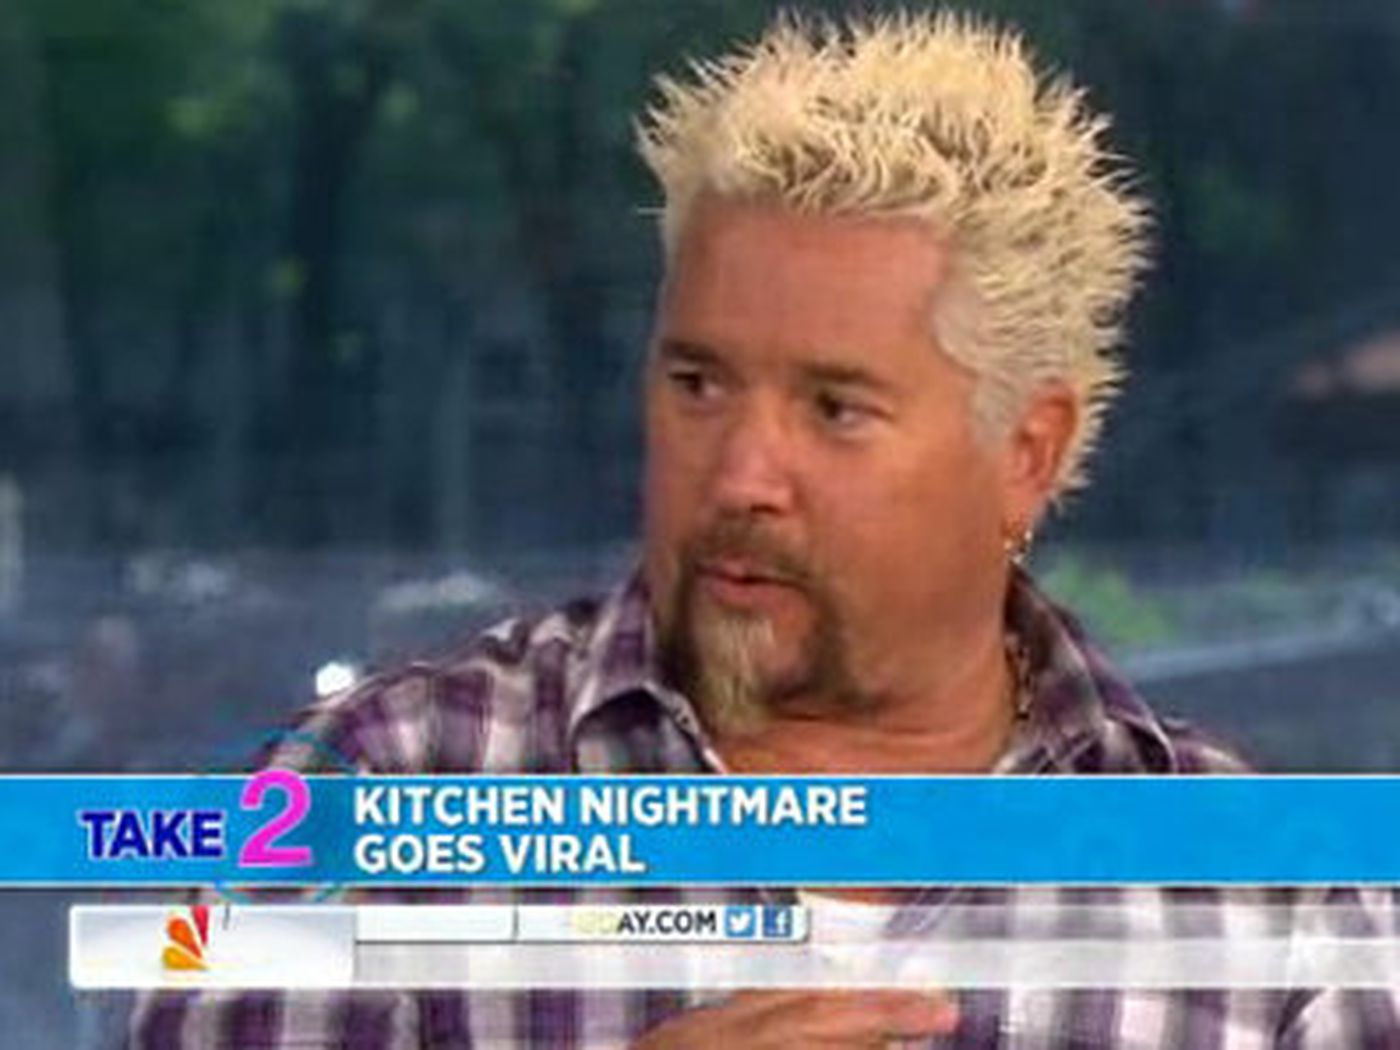 Guy Fieri Boldly Chimes in on the Crazy Kitchen Nightmares ...